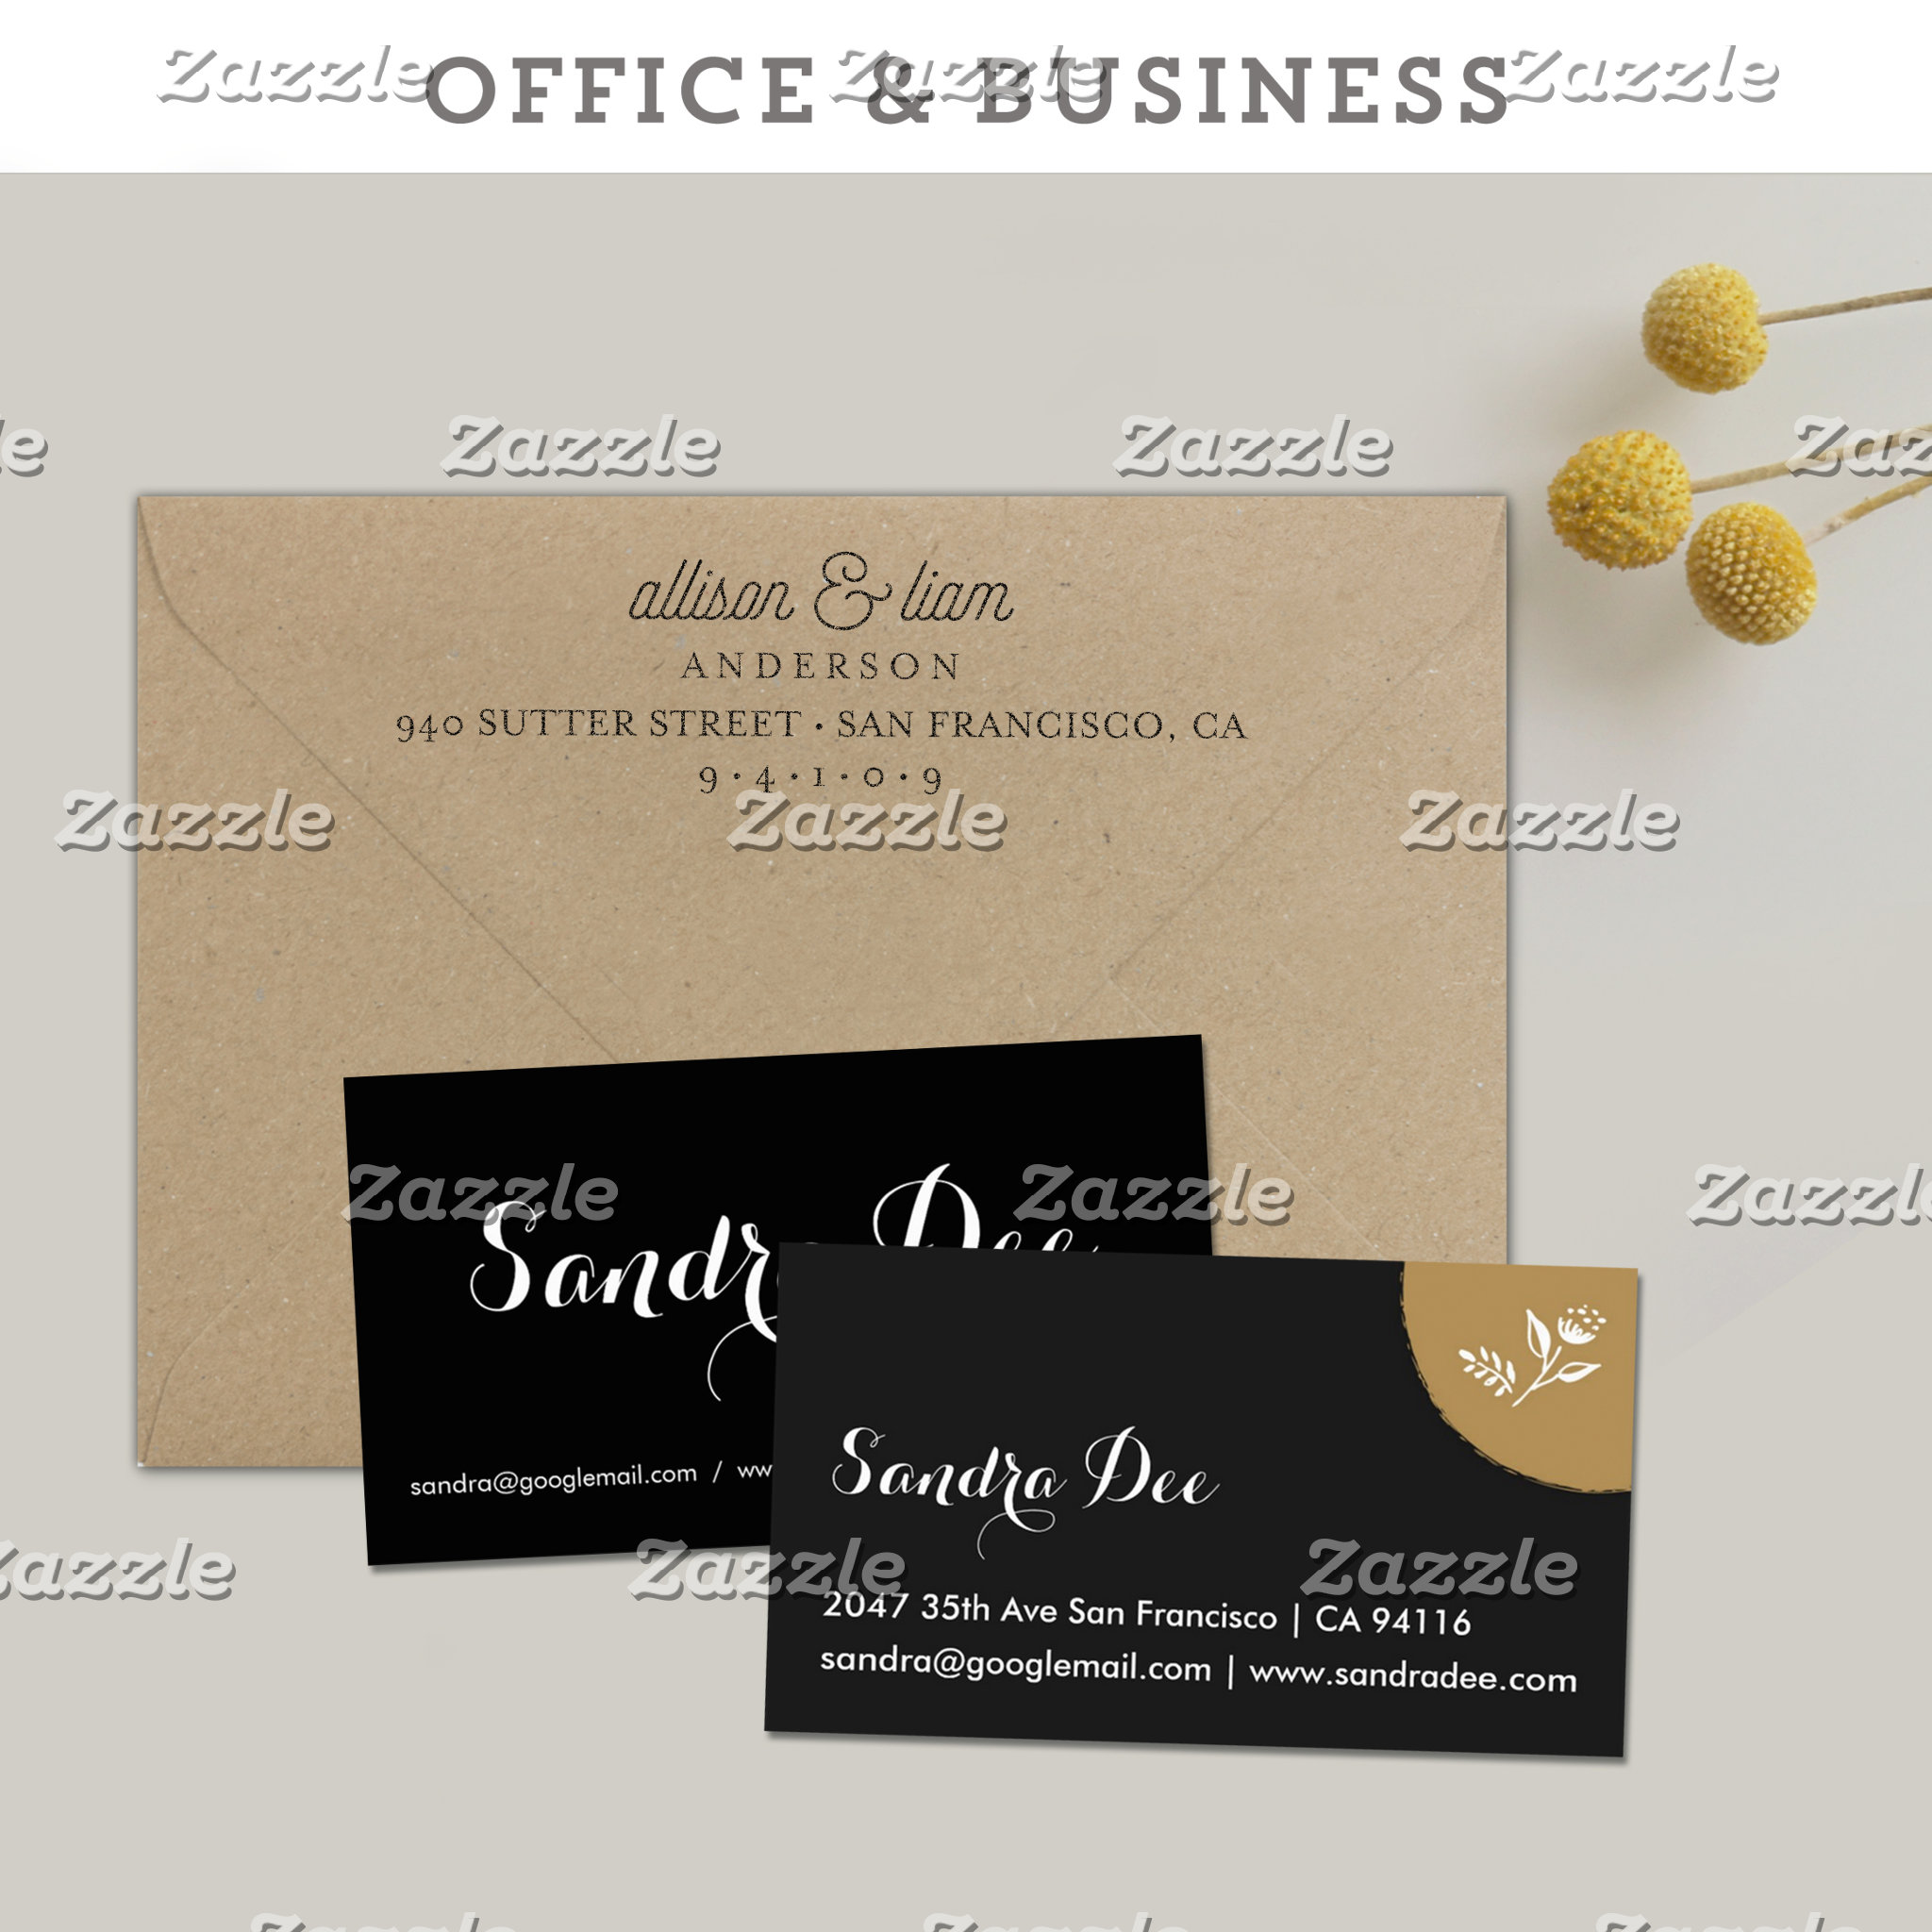 Office and Business